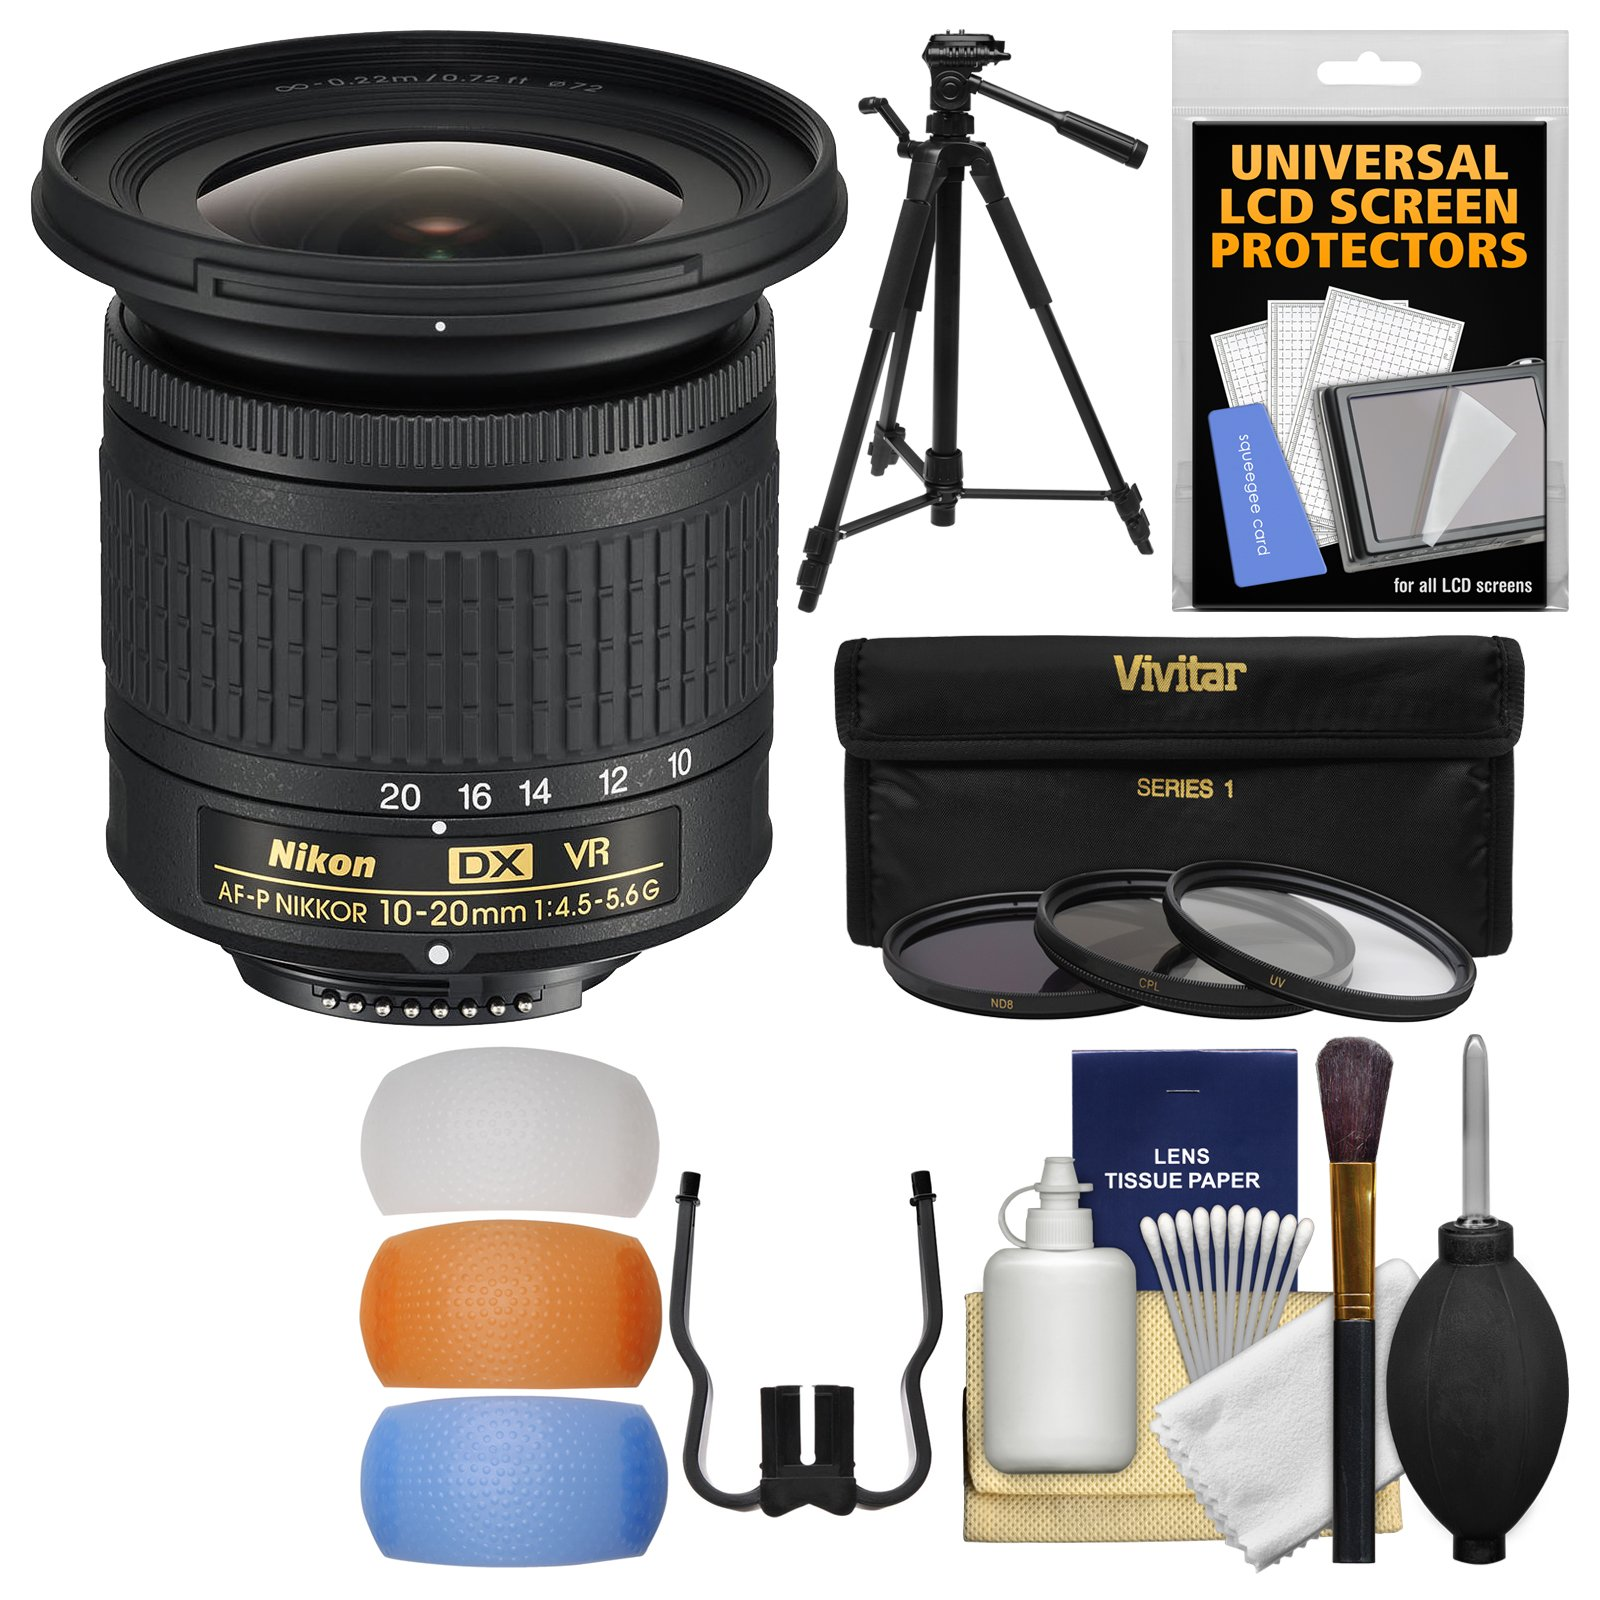 Nikon 10-20mm f/4.5-5.6G DX AF-P VR Zoom-Nikkor Lens with 3 UV/CPL/ND8 Filters + Tripod + Flash Diffusers + Kit